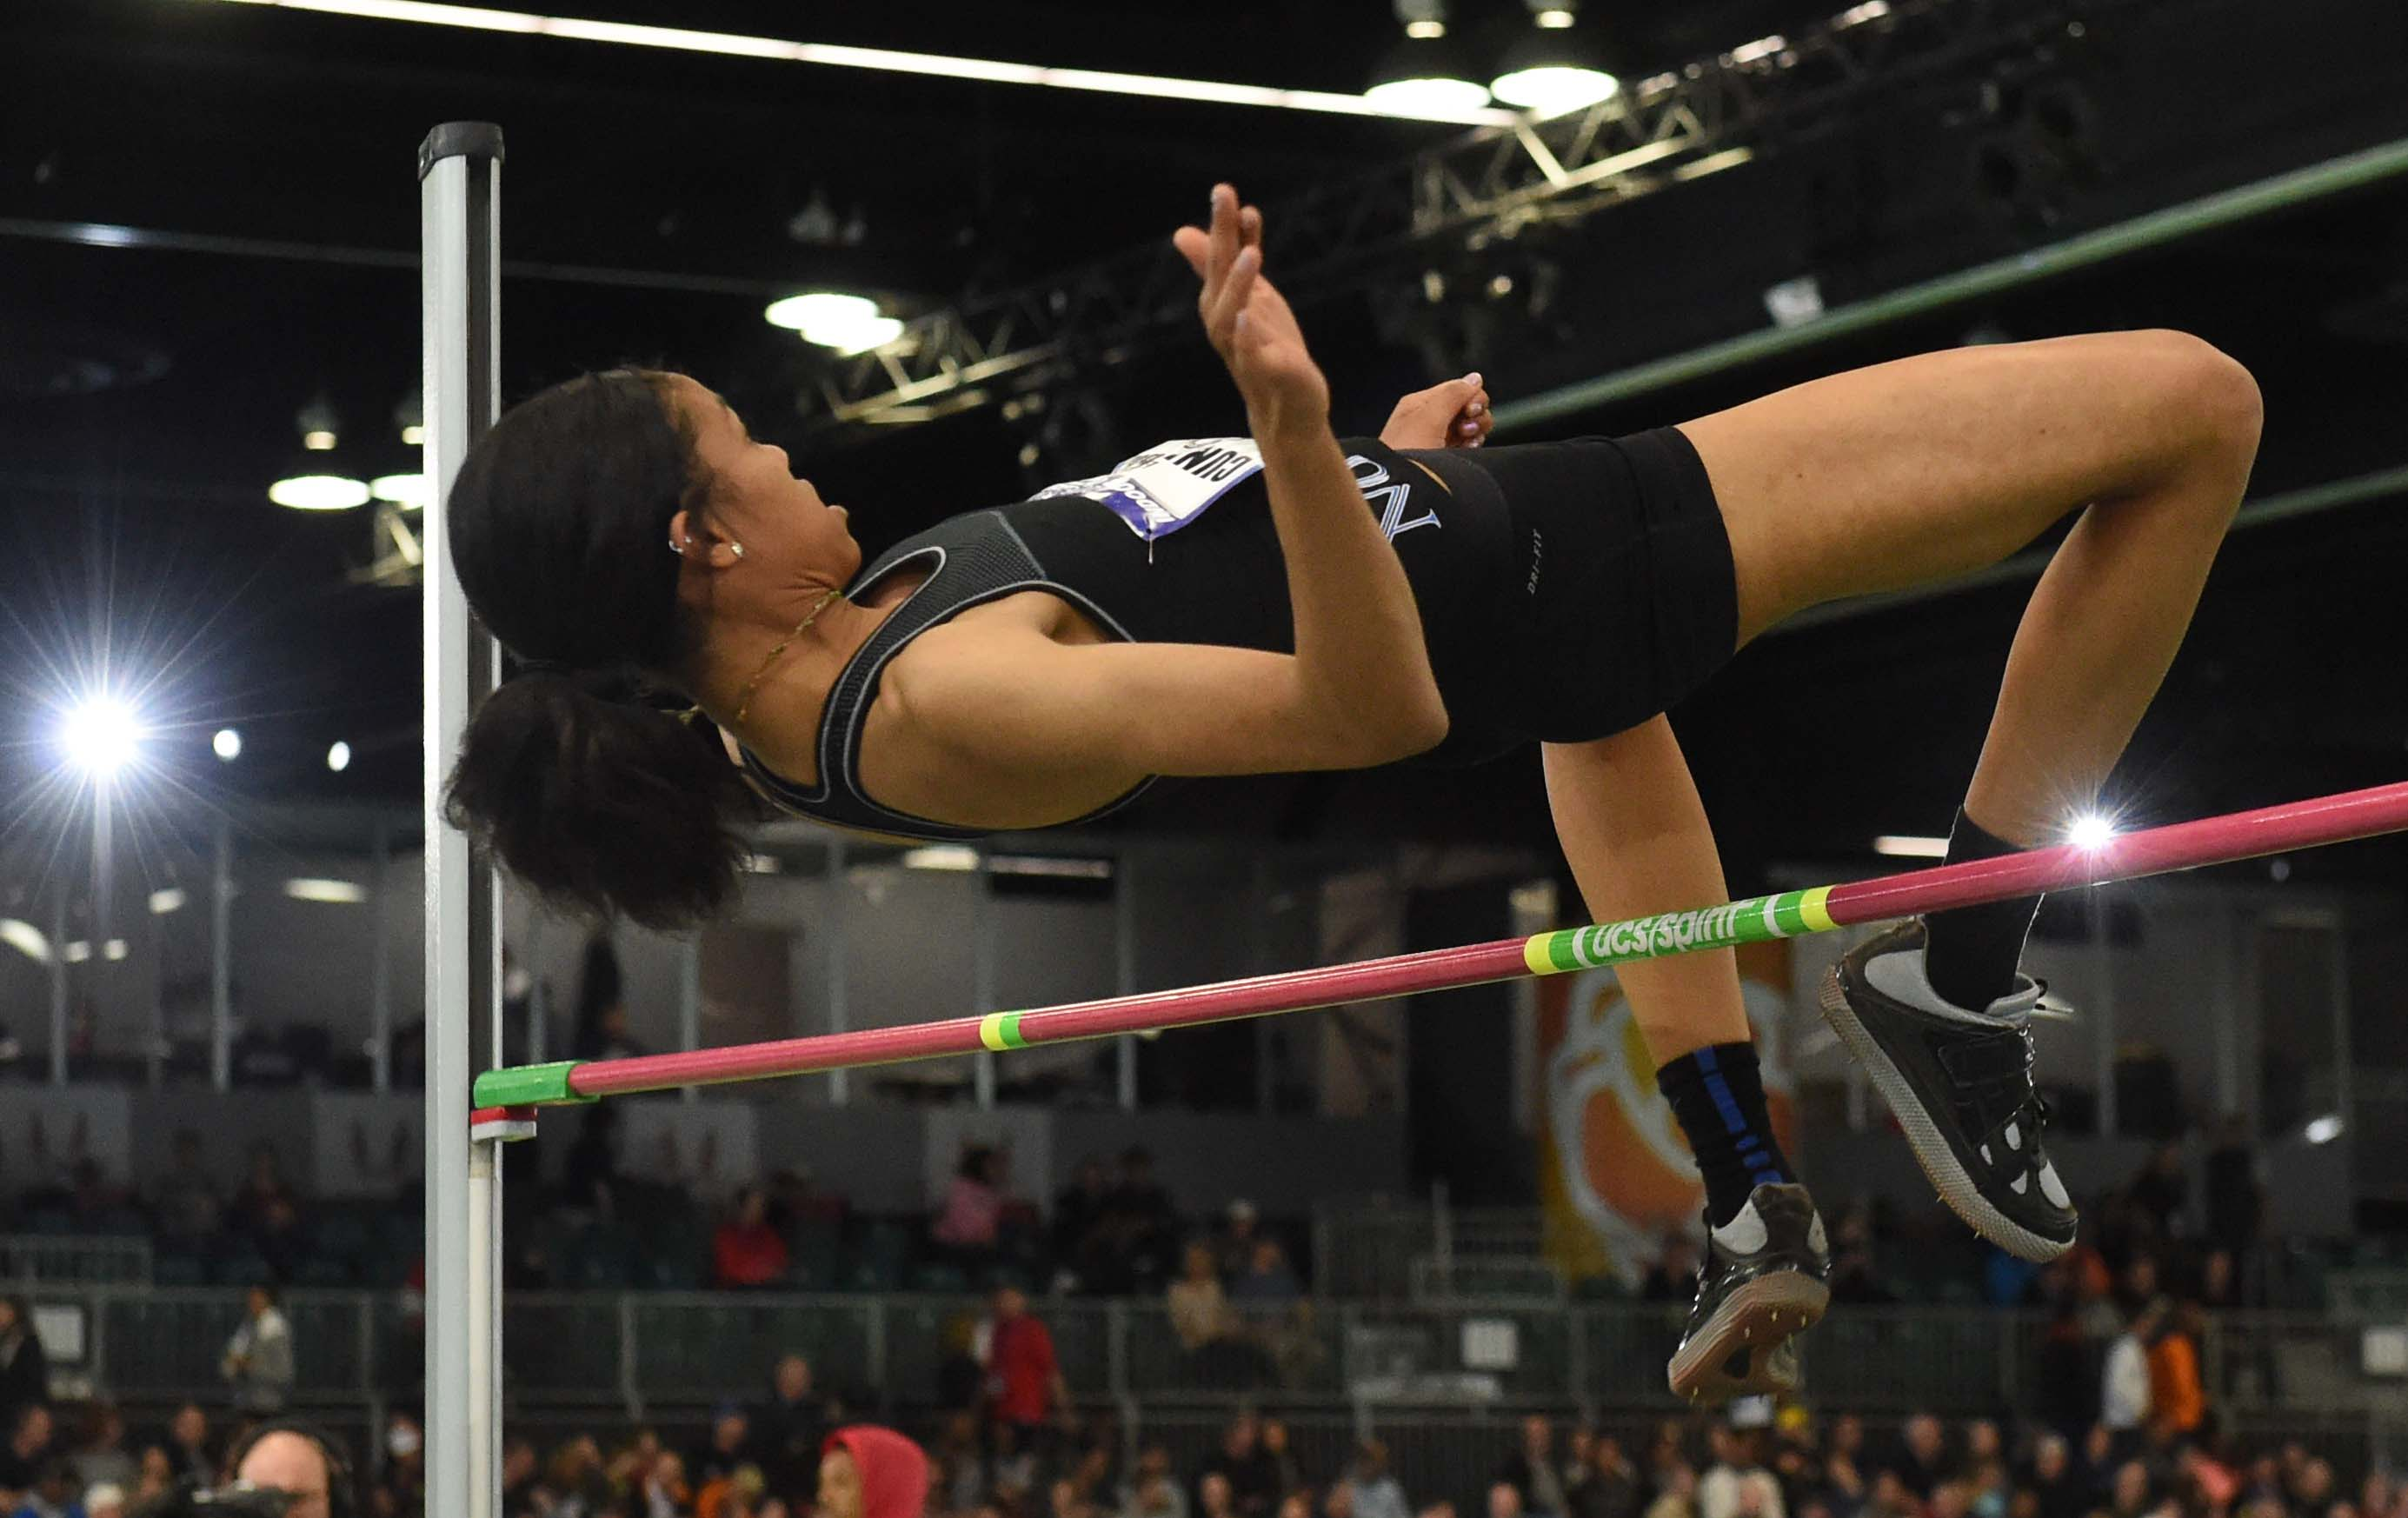 Vashti Cunningham wins the womens high jump in a national high school record 6-6 1/4 (1.99m) during the 2016 USA Indoor Championships (Photo: Kirby Lee, USA TODAY Sports)